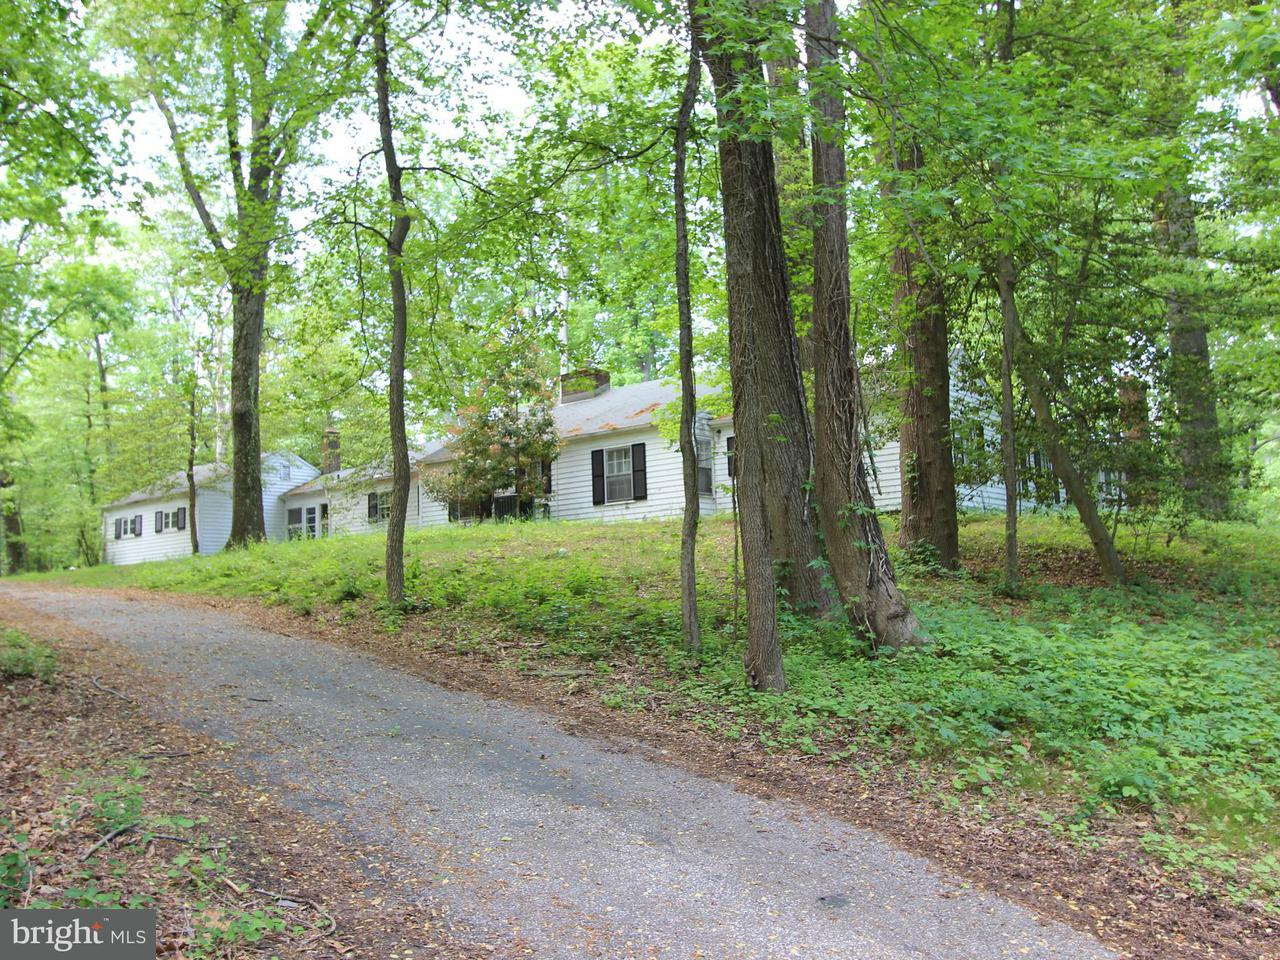 Single Family Home for Sale at 1711 ST GILES Road 1711 ST GILES Road Gibson Island, Maryland 21056 United States